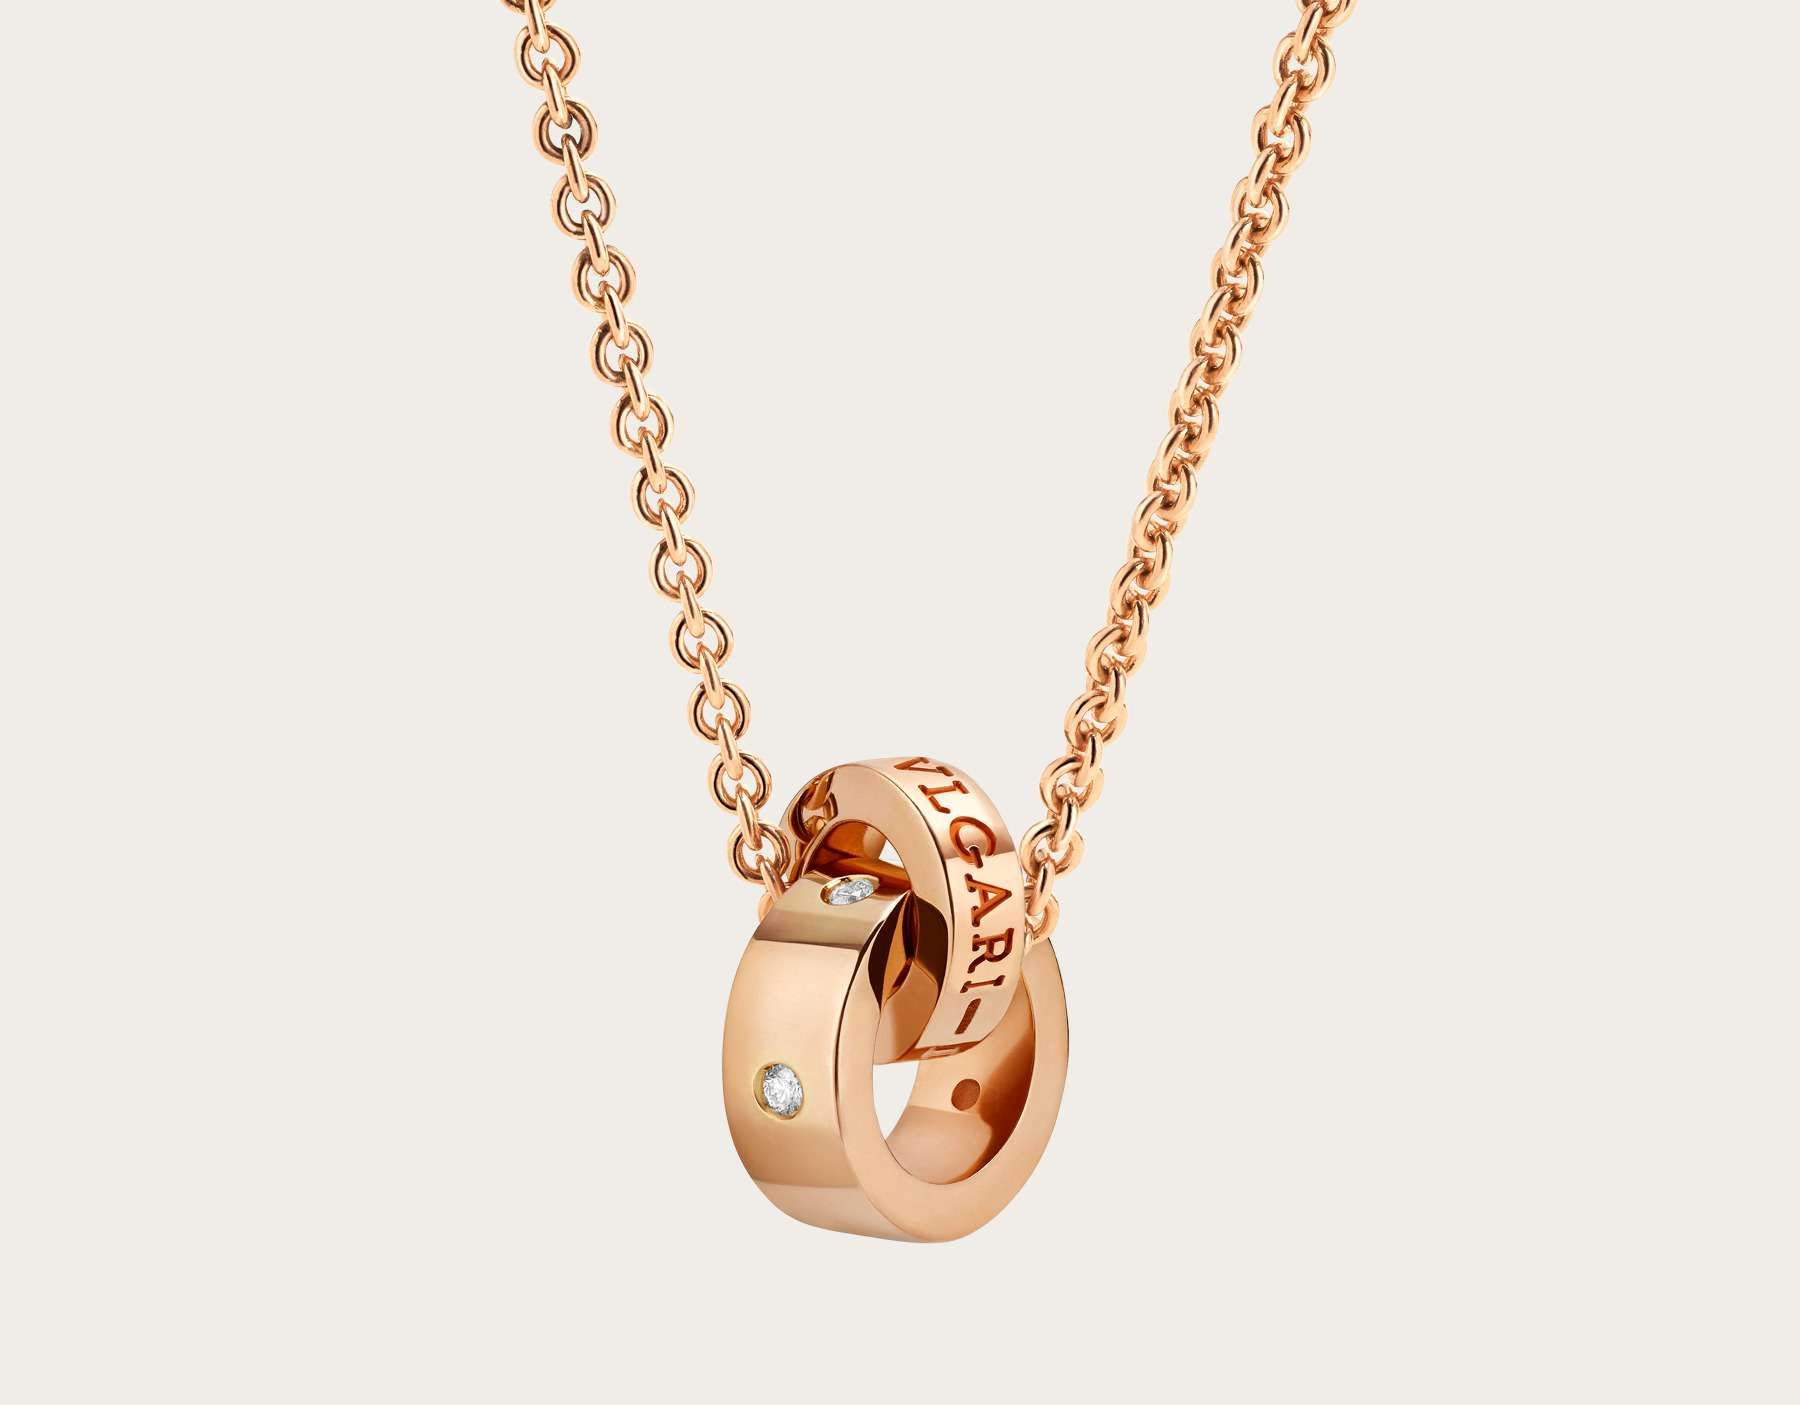 We customized this bvlgari bvlgari necklace with kt rose gold